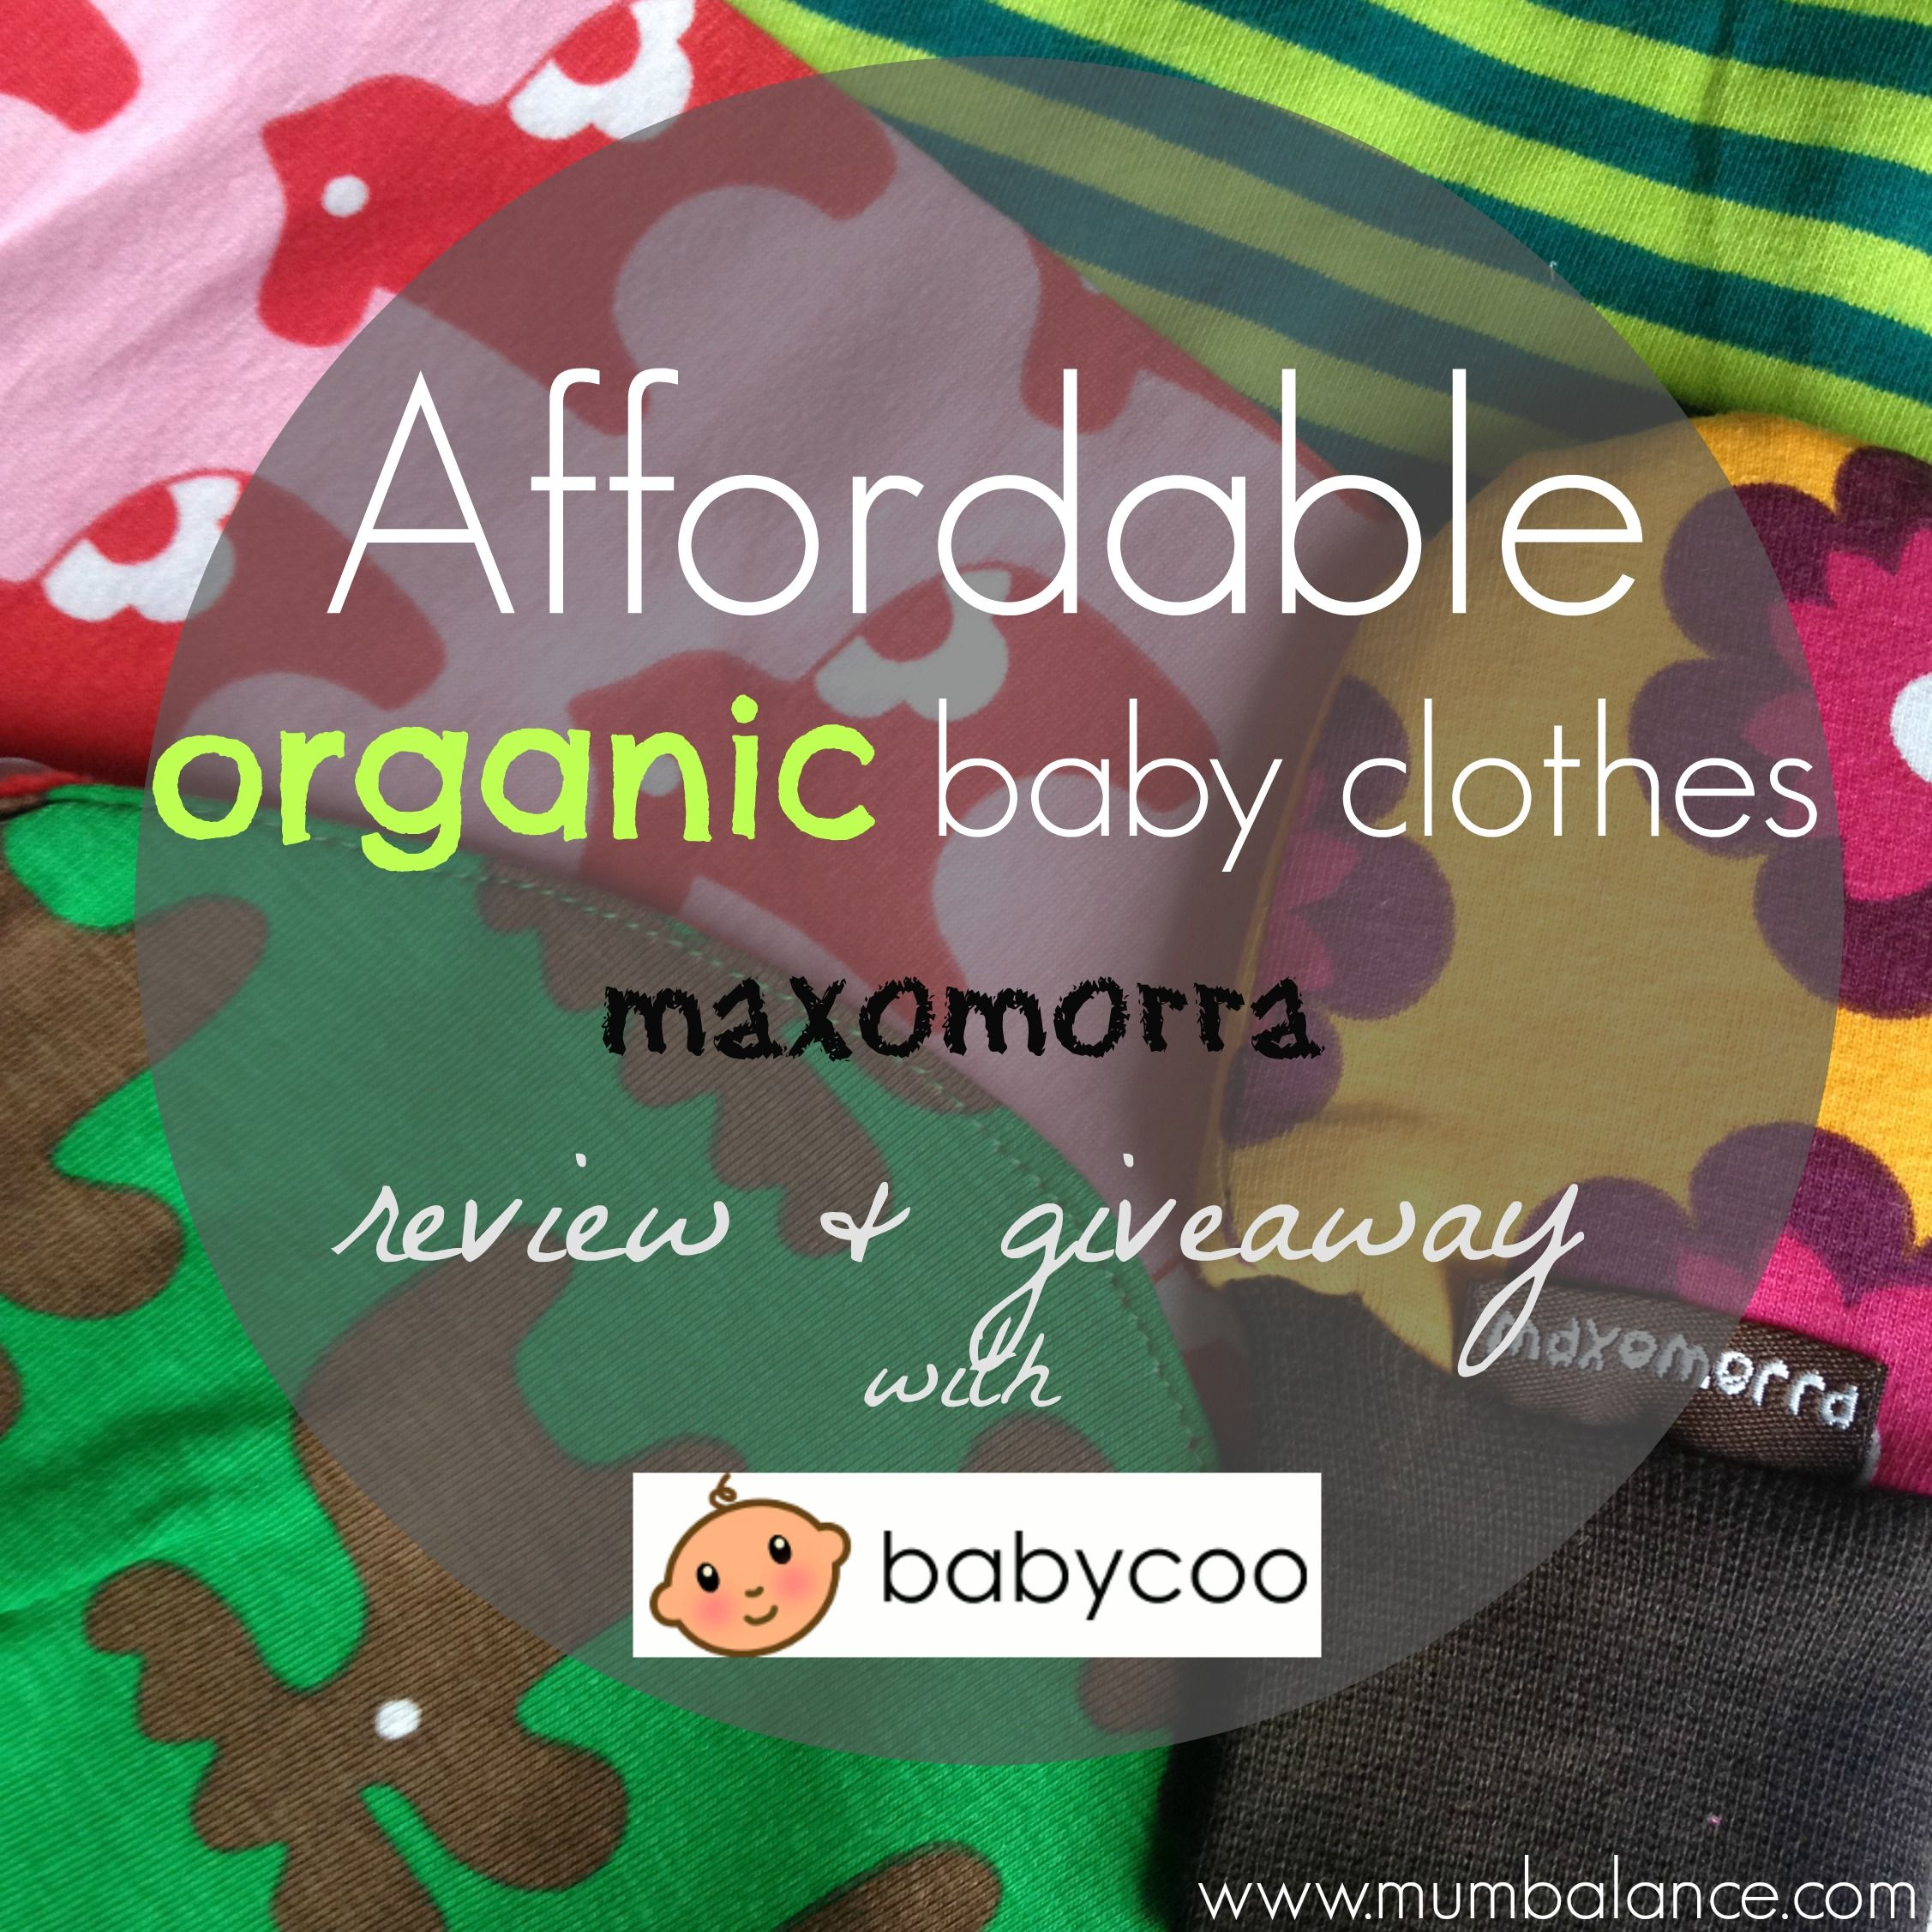 A chance to win £25 to spend on Maxomorra Organic baby clothes on